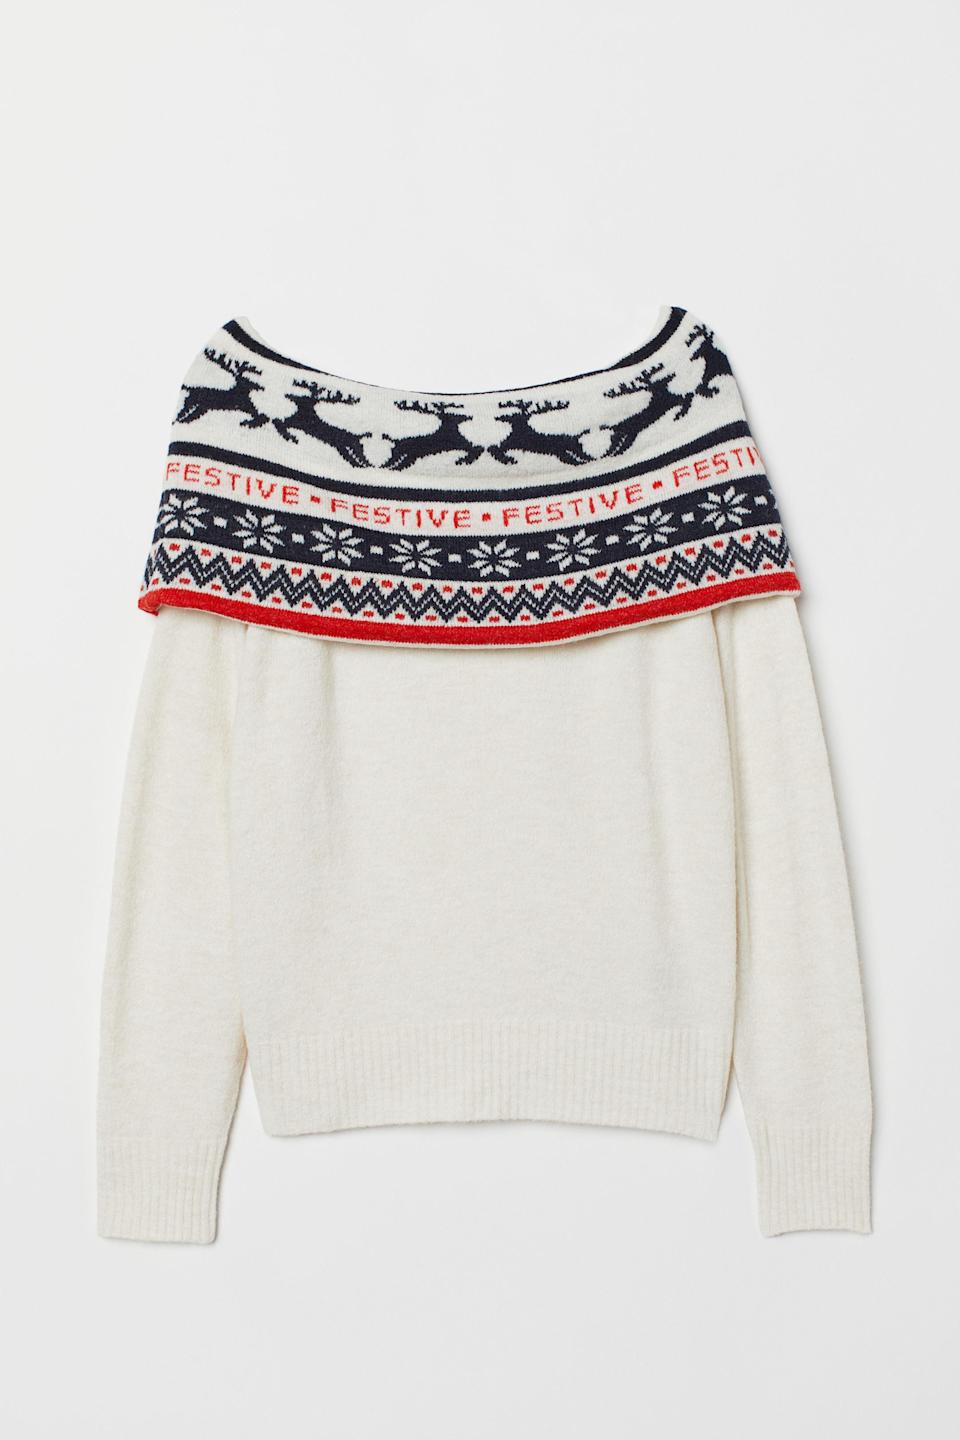 H&M Off-the-shoulder Sweater. (Photo: H&M)